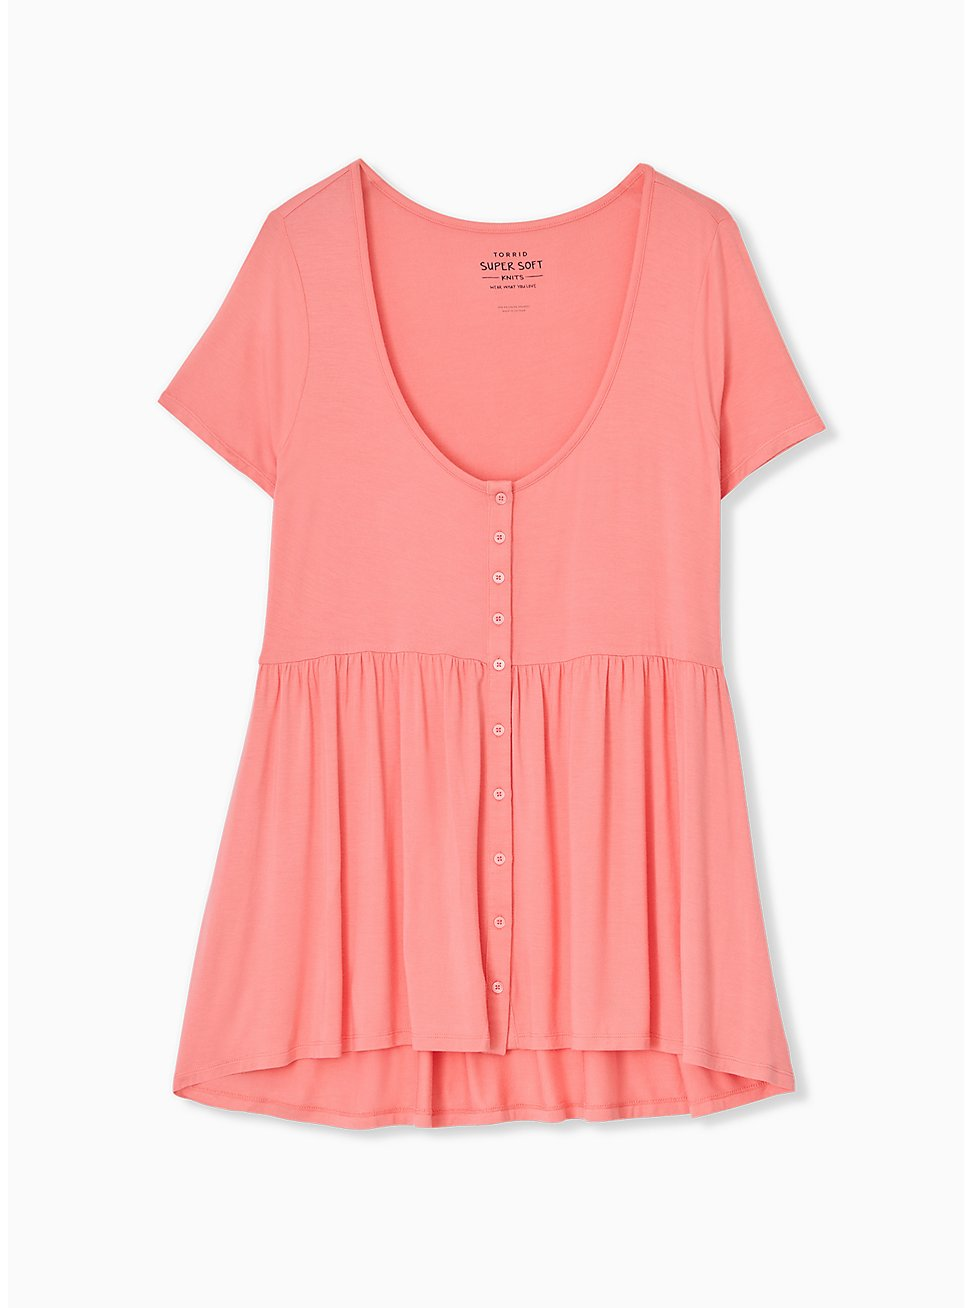 Super Soft Coral Button Front Babydoll Tee, WILD ORANGE, hi-res